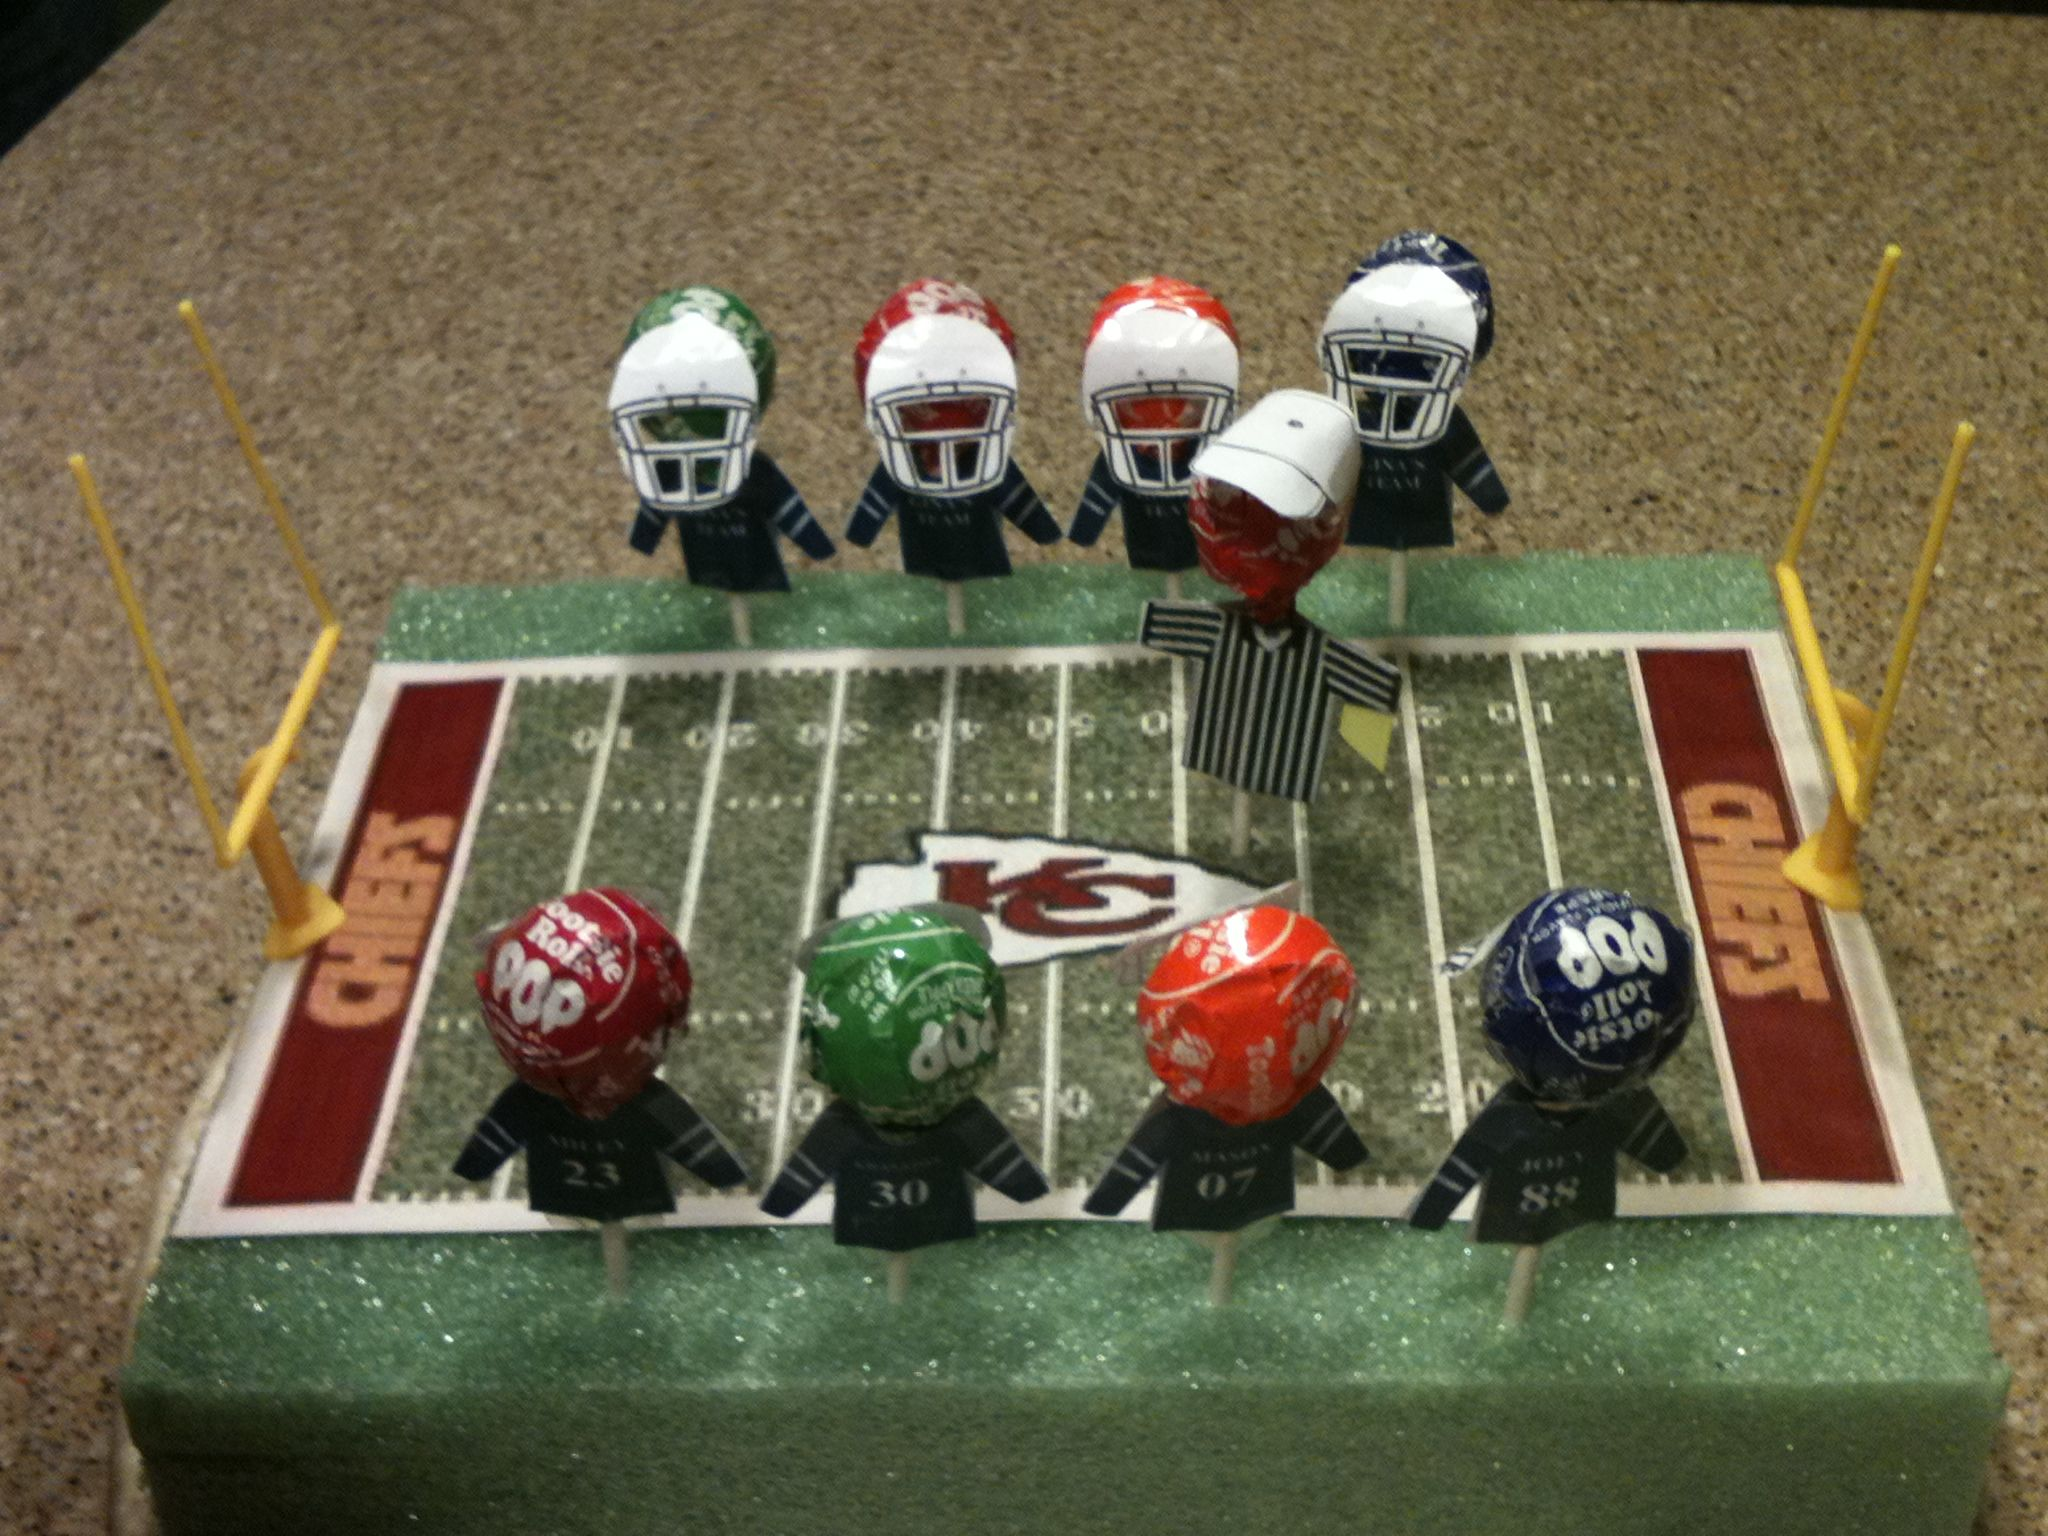 foto de Valentine football treats Tootsie pops card stock jerseys and helmets Also made a field out